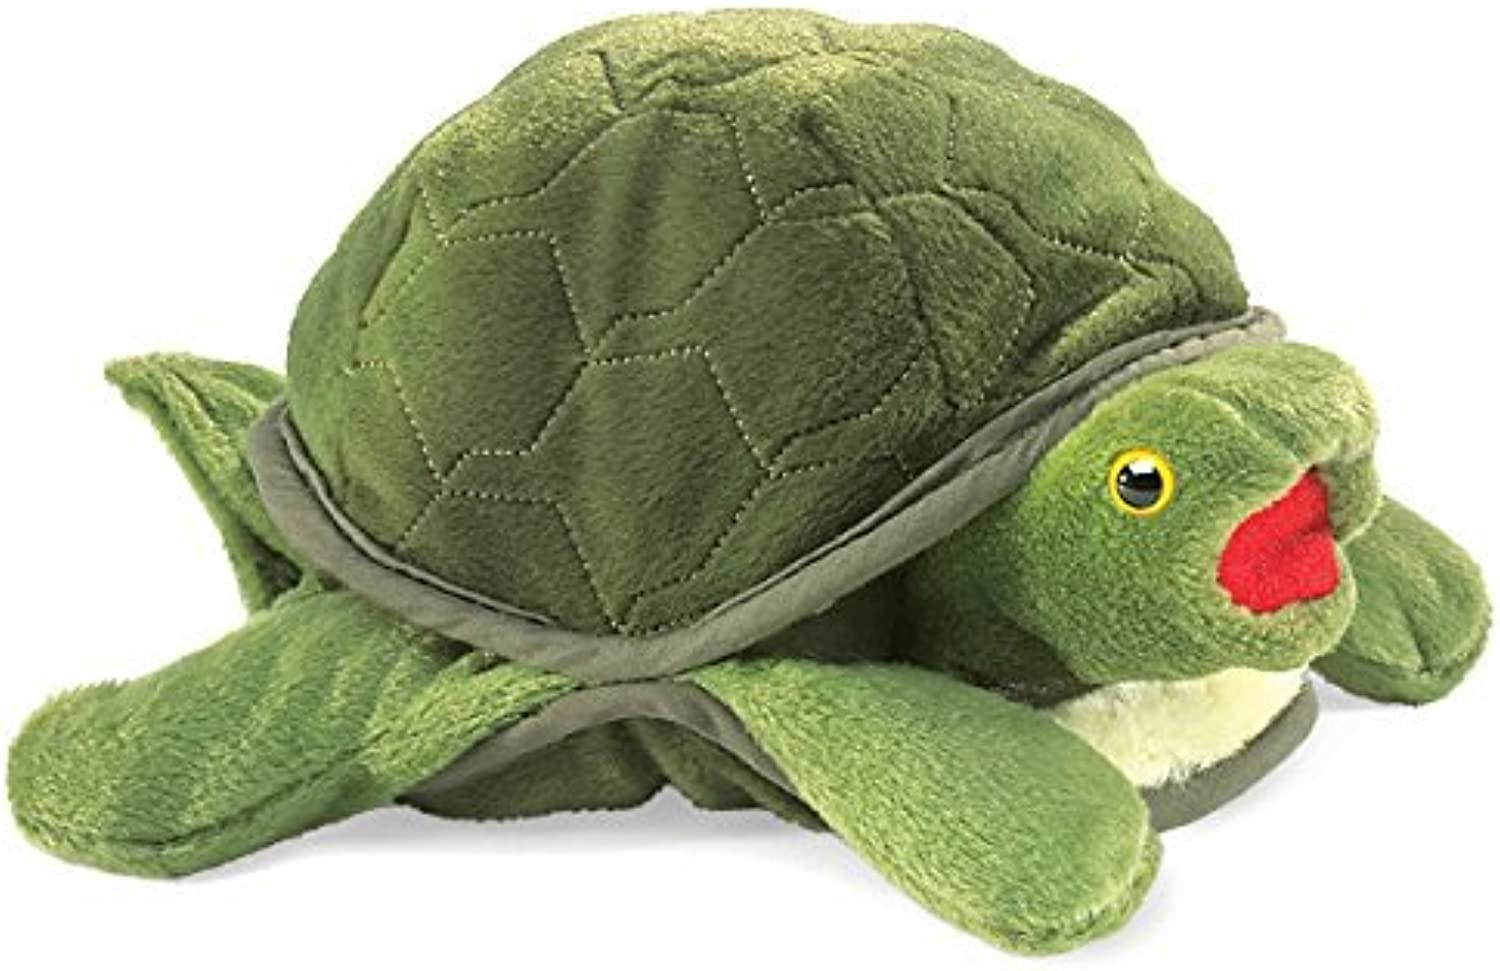 Folkmanis Baby Turtle Hand Puppet by Folkmanis